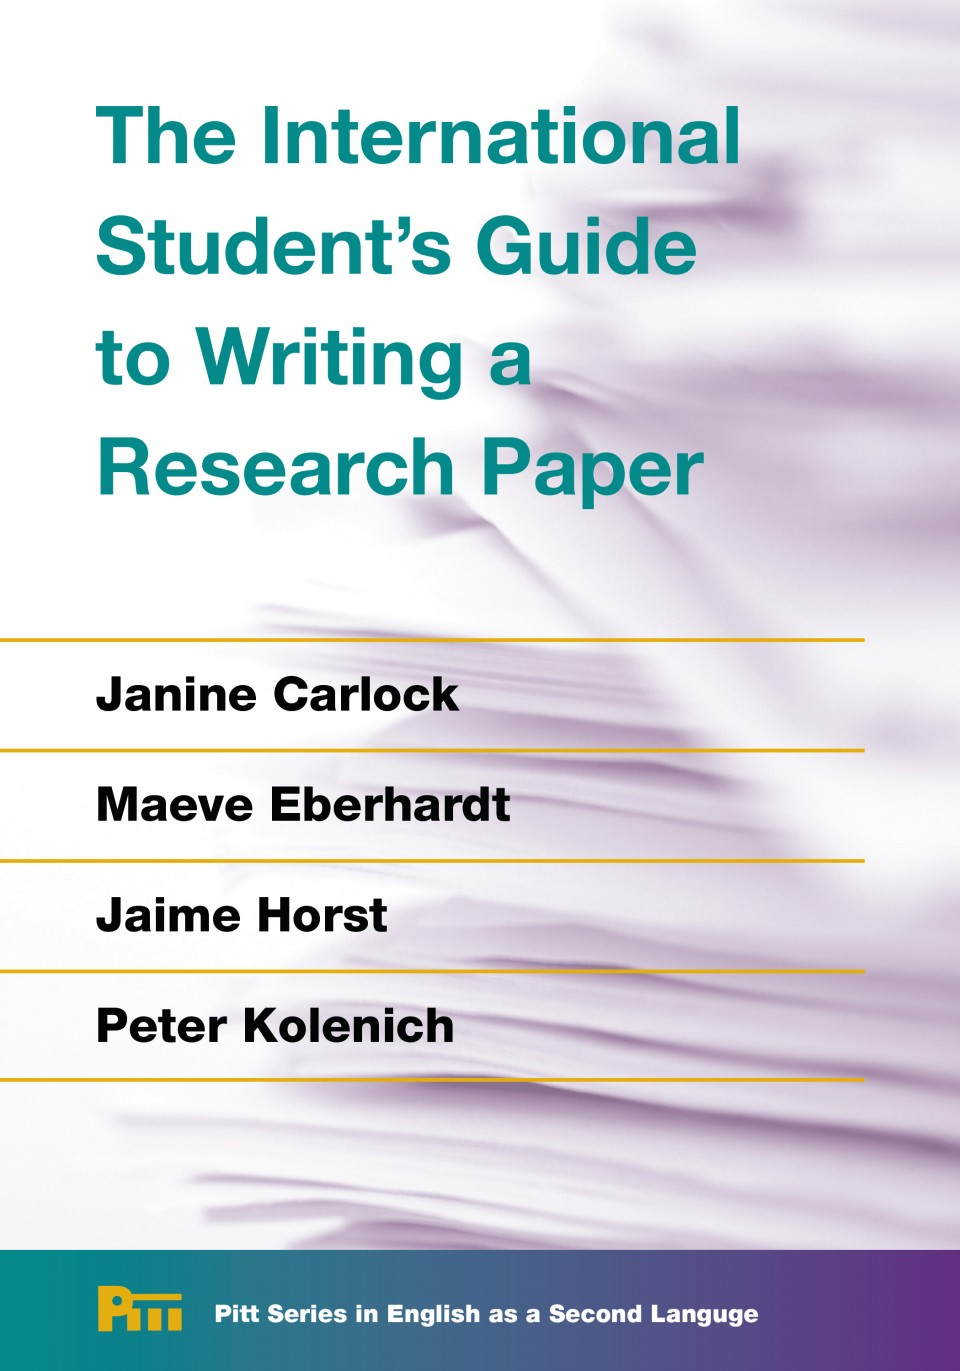 013 Writing The Research Paper Phenomenal How To Write Outline A Pdf Handbook 8th Edition 960